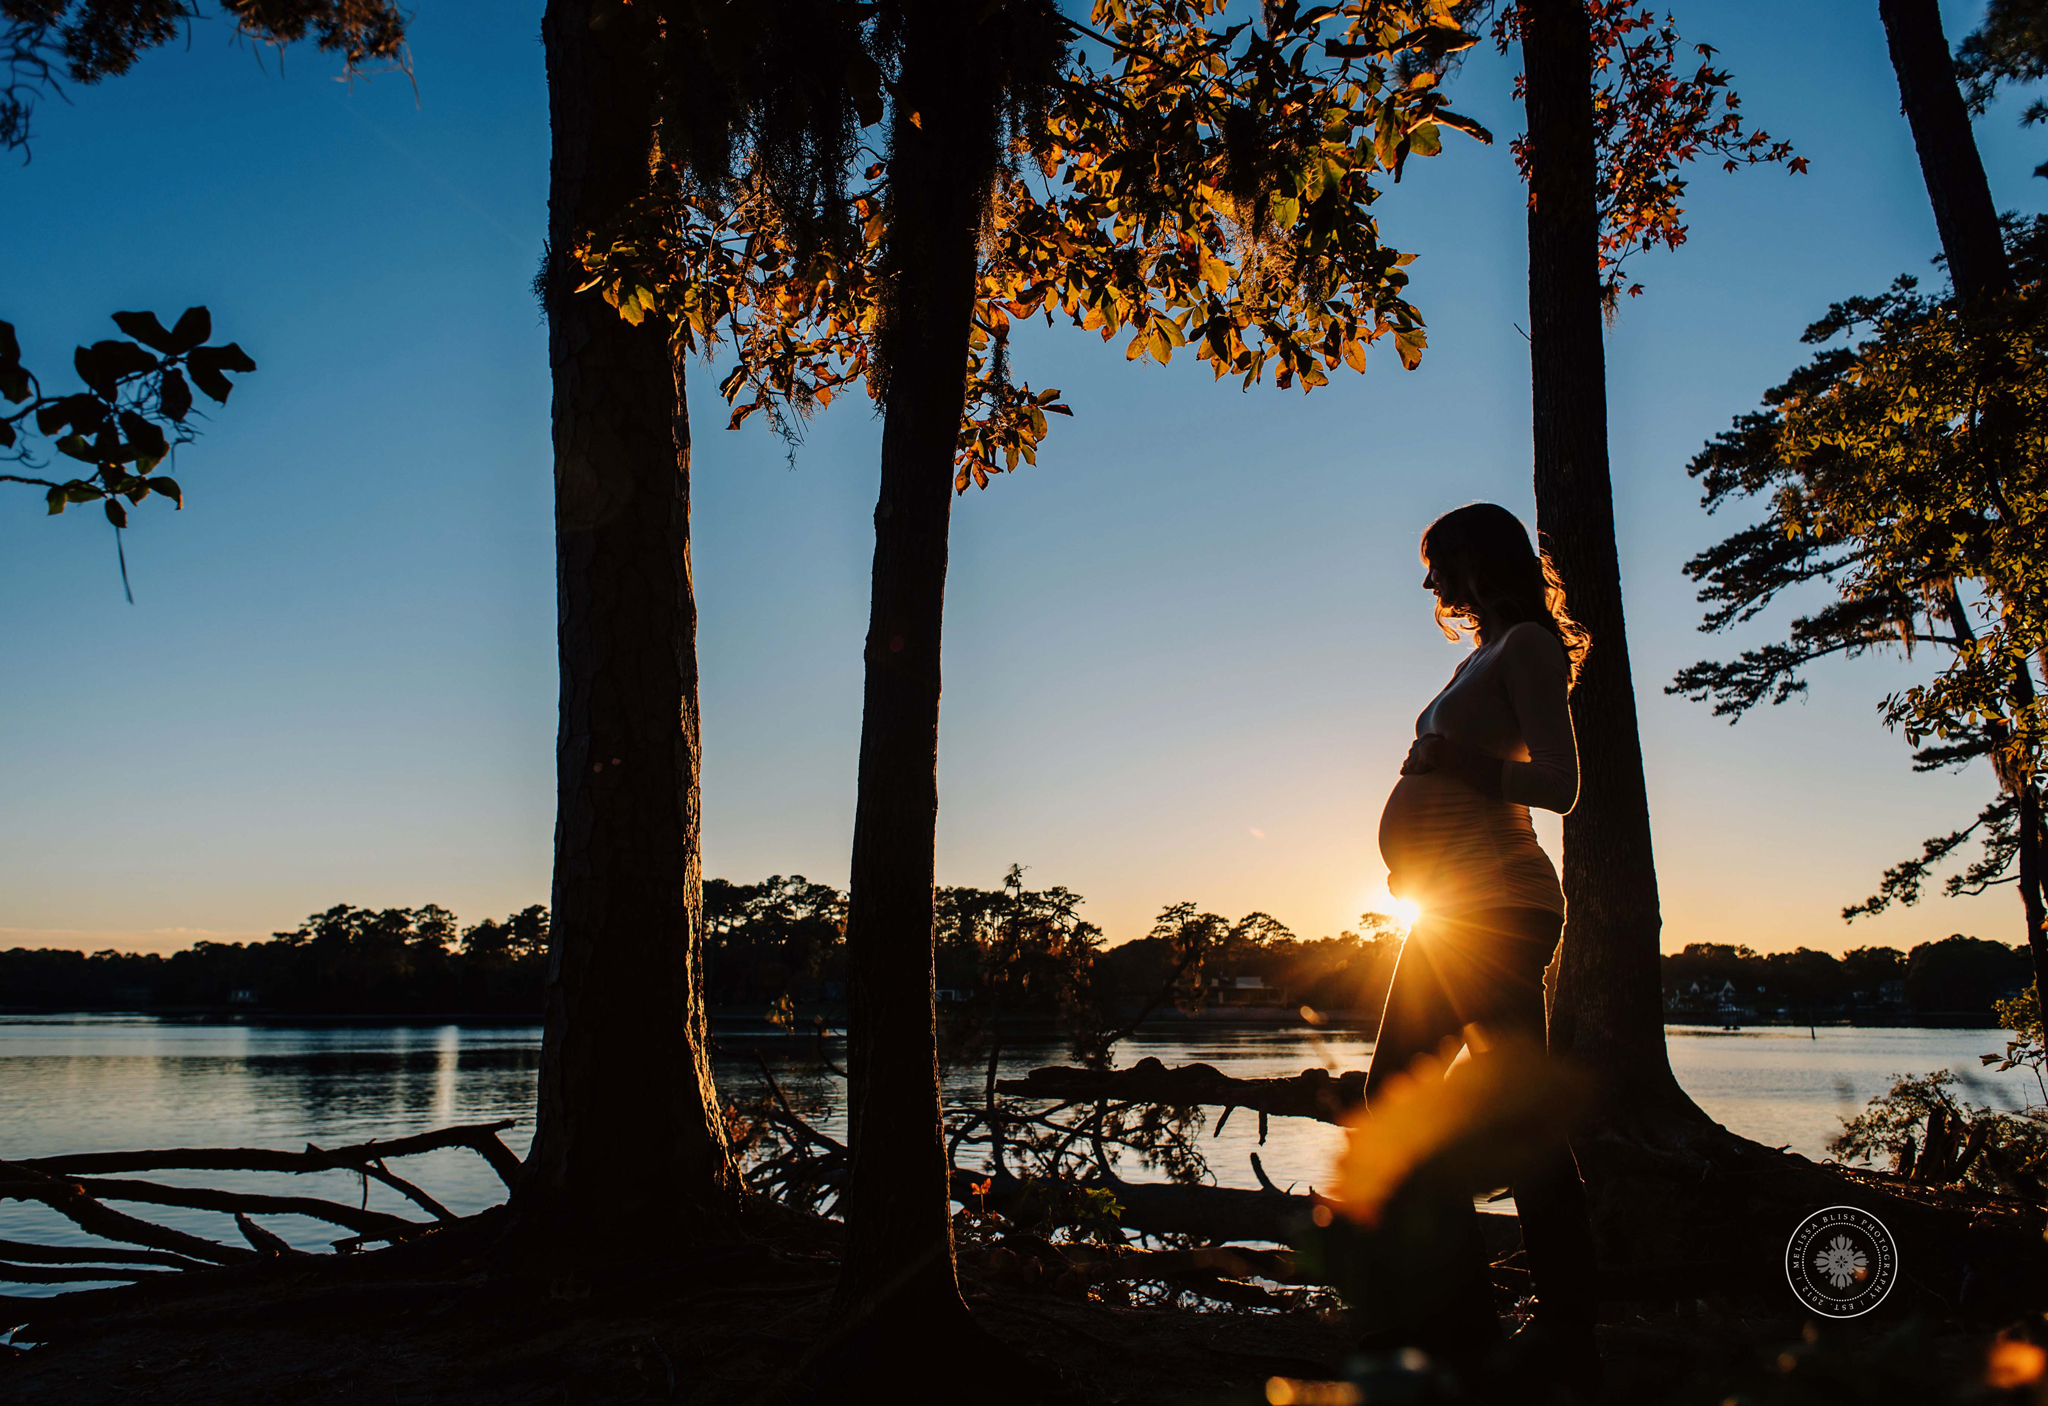 first-landing-state-park-at-sunset-maternity-portrait-melissa-bliss-photography